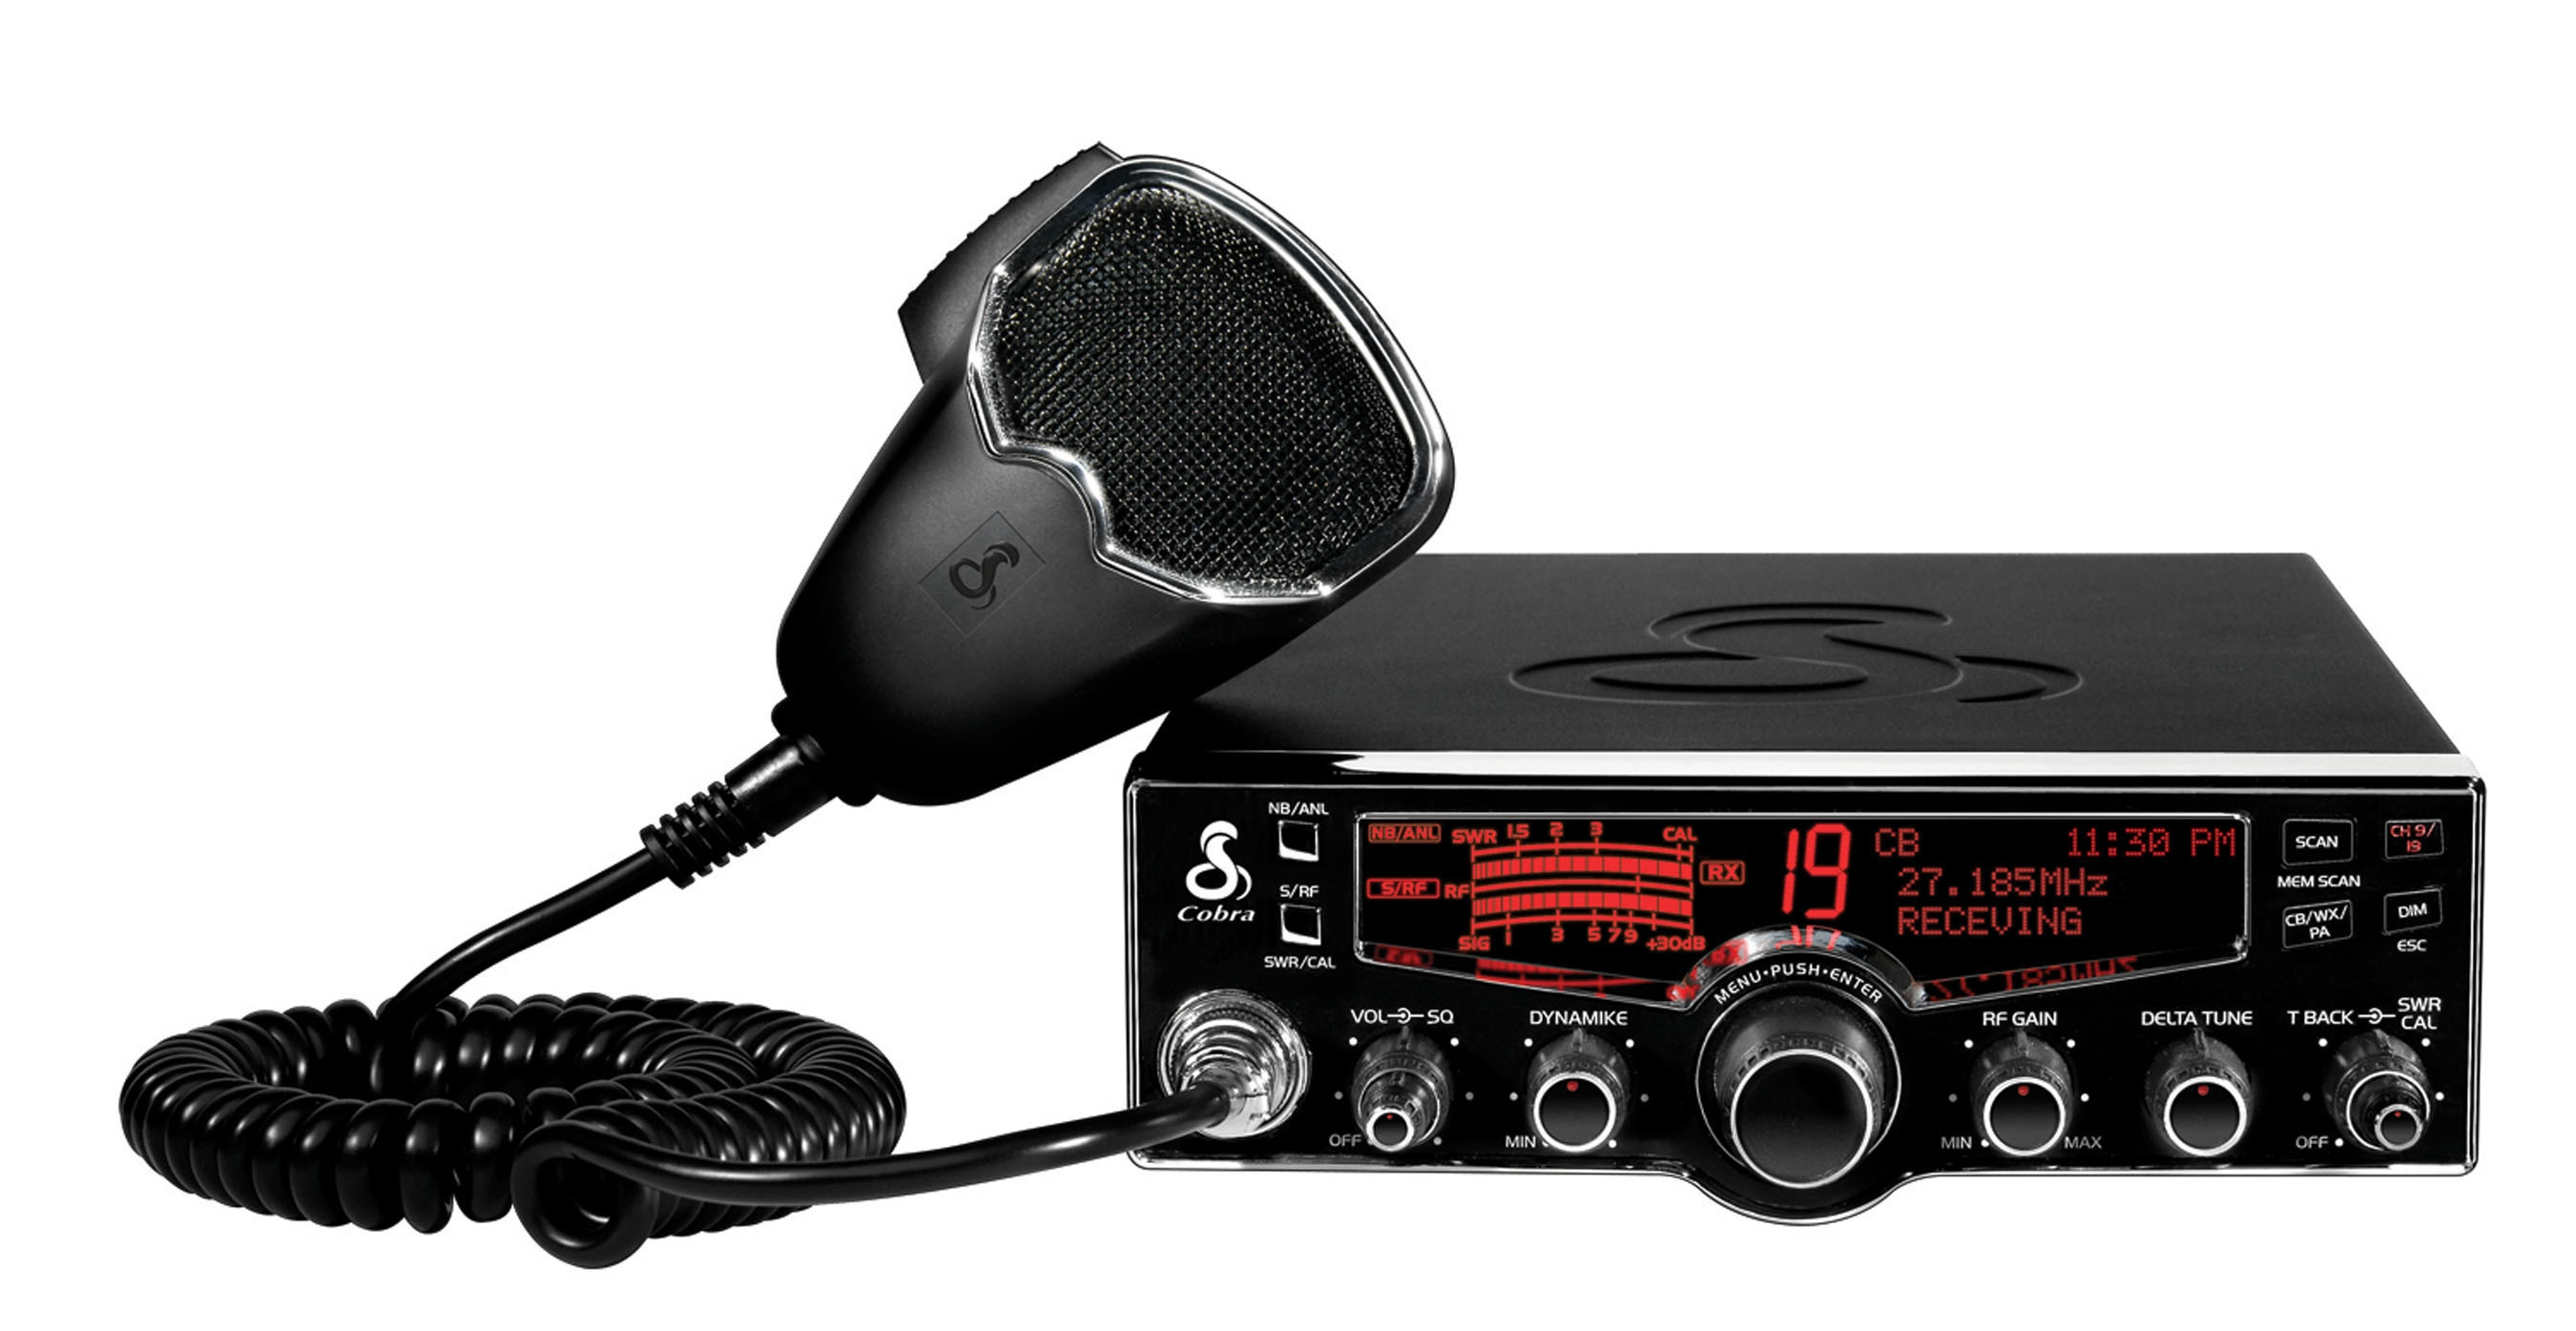 CB radio community